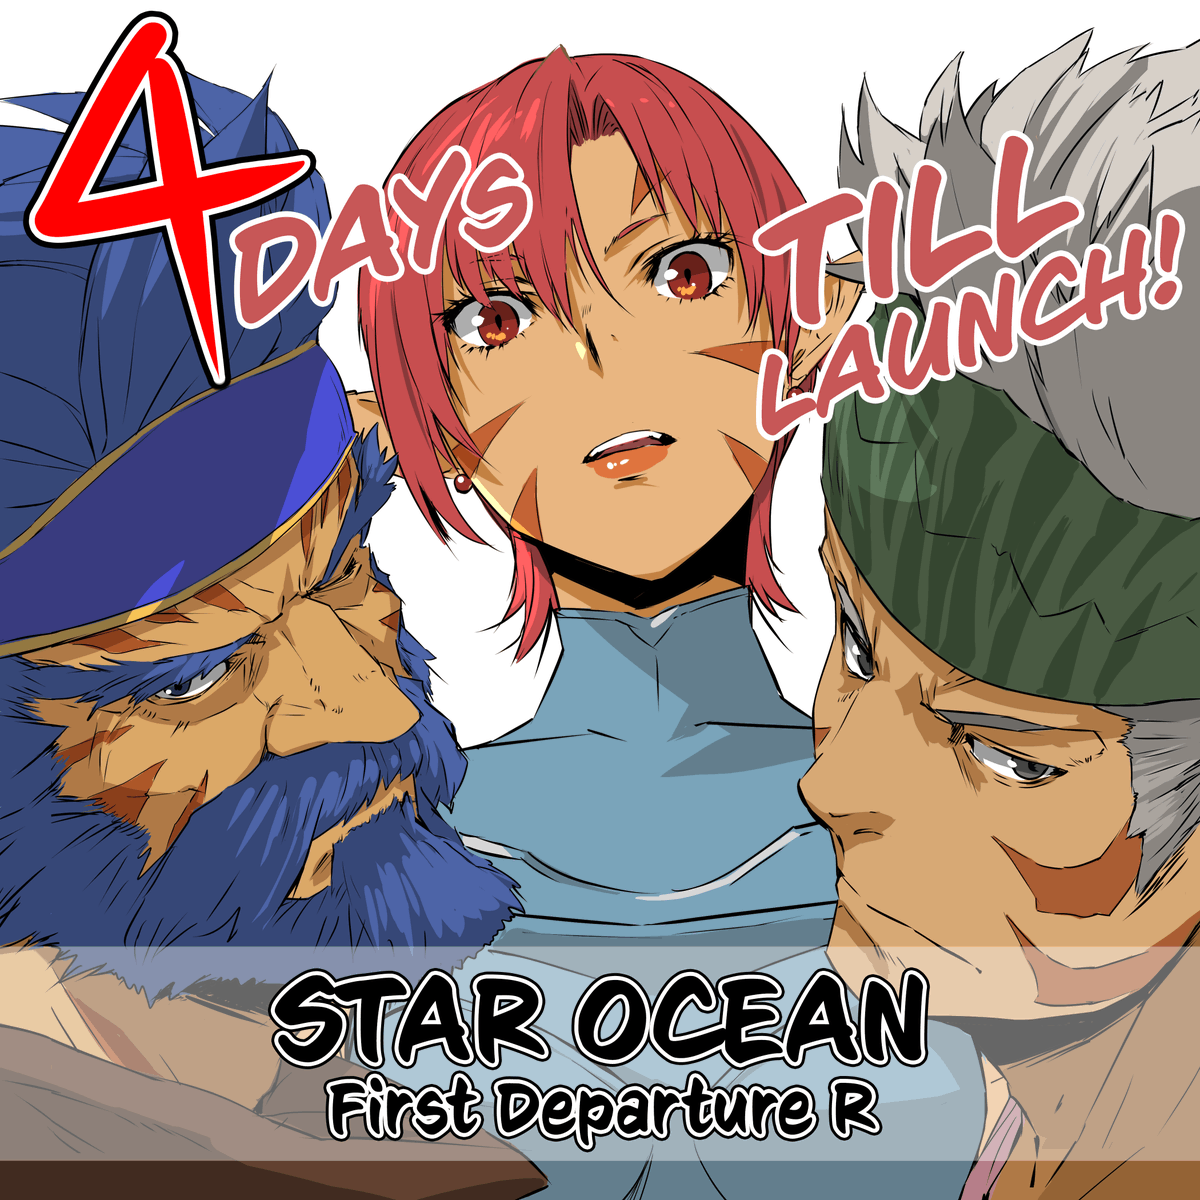 Only 4 days left! STAR OCEAN First Departure R will be digitally available on #PS4 and #NintendoSwitch! Learn more: sqex.link/0iv #StarOcean